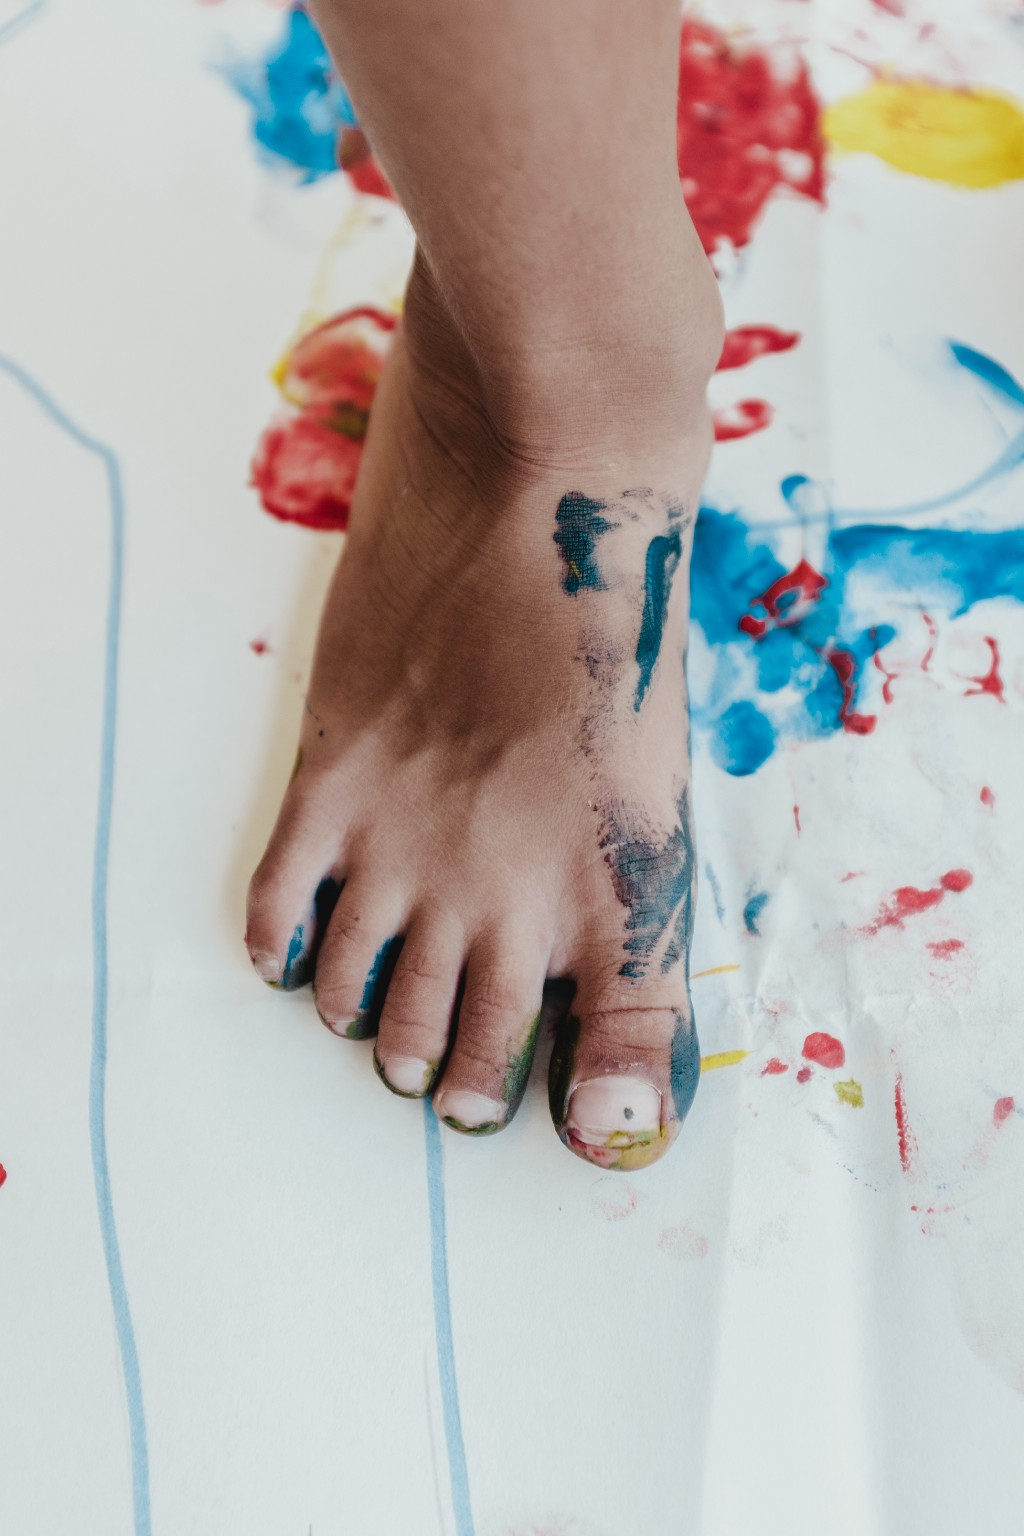 A foot splashed with paint.